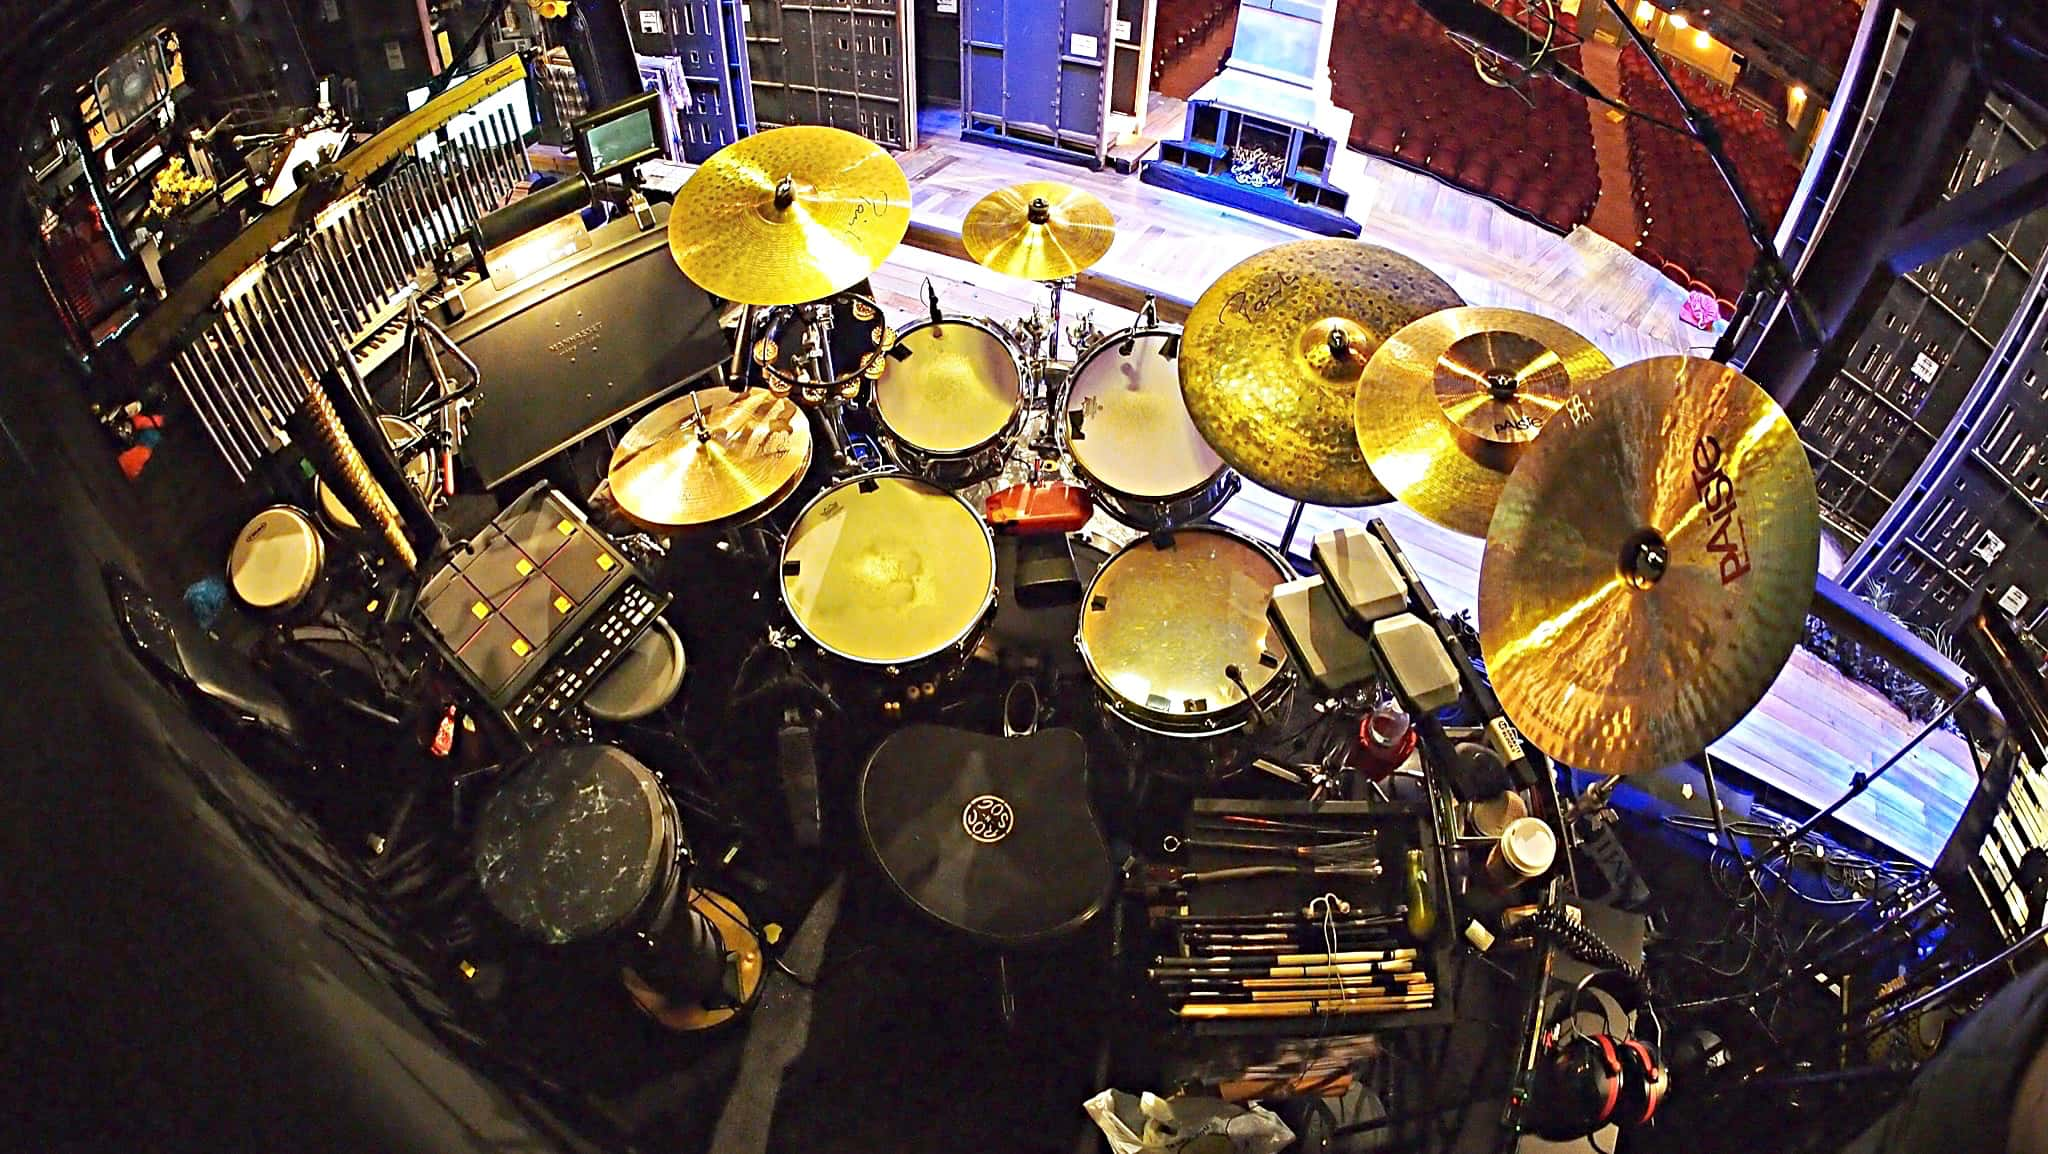 Perry Cavari's drum set setup for the Broadway production of Big Fish at the Neil Simon Theatre.